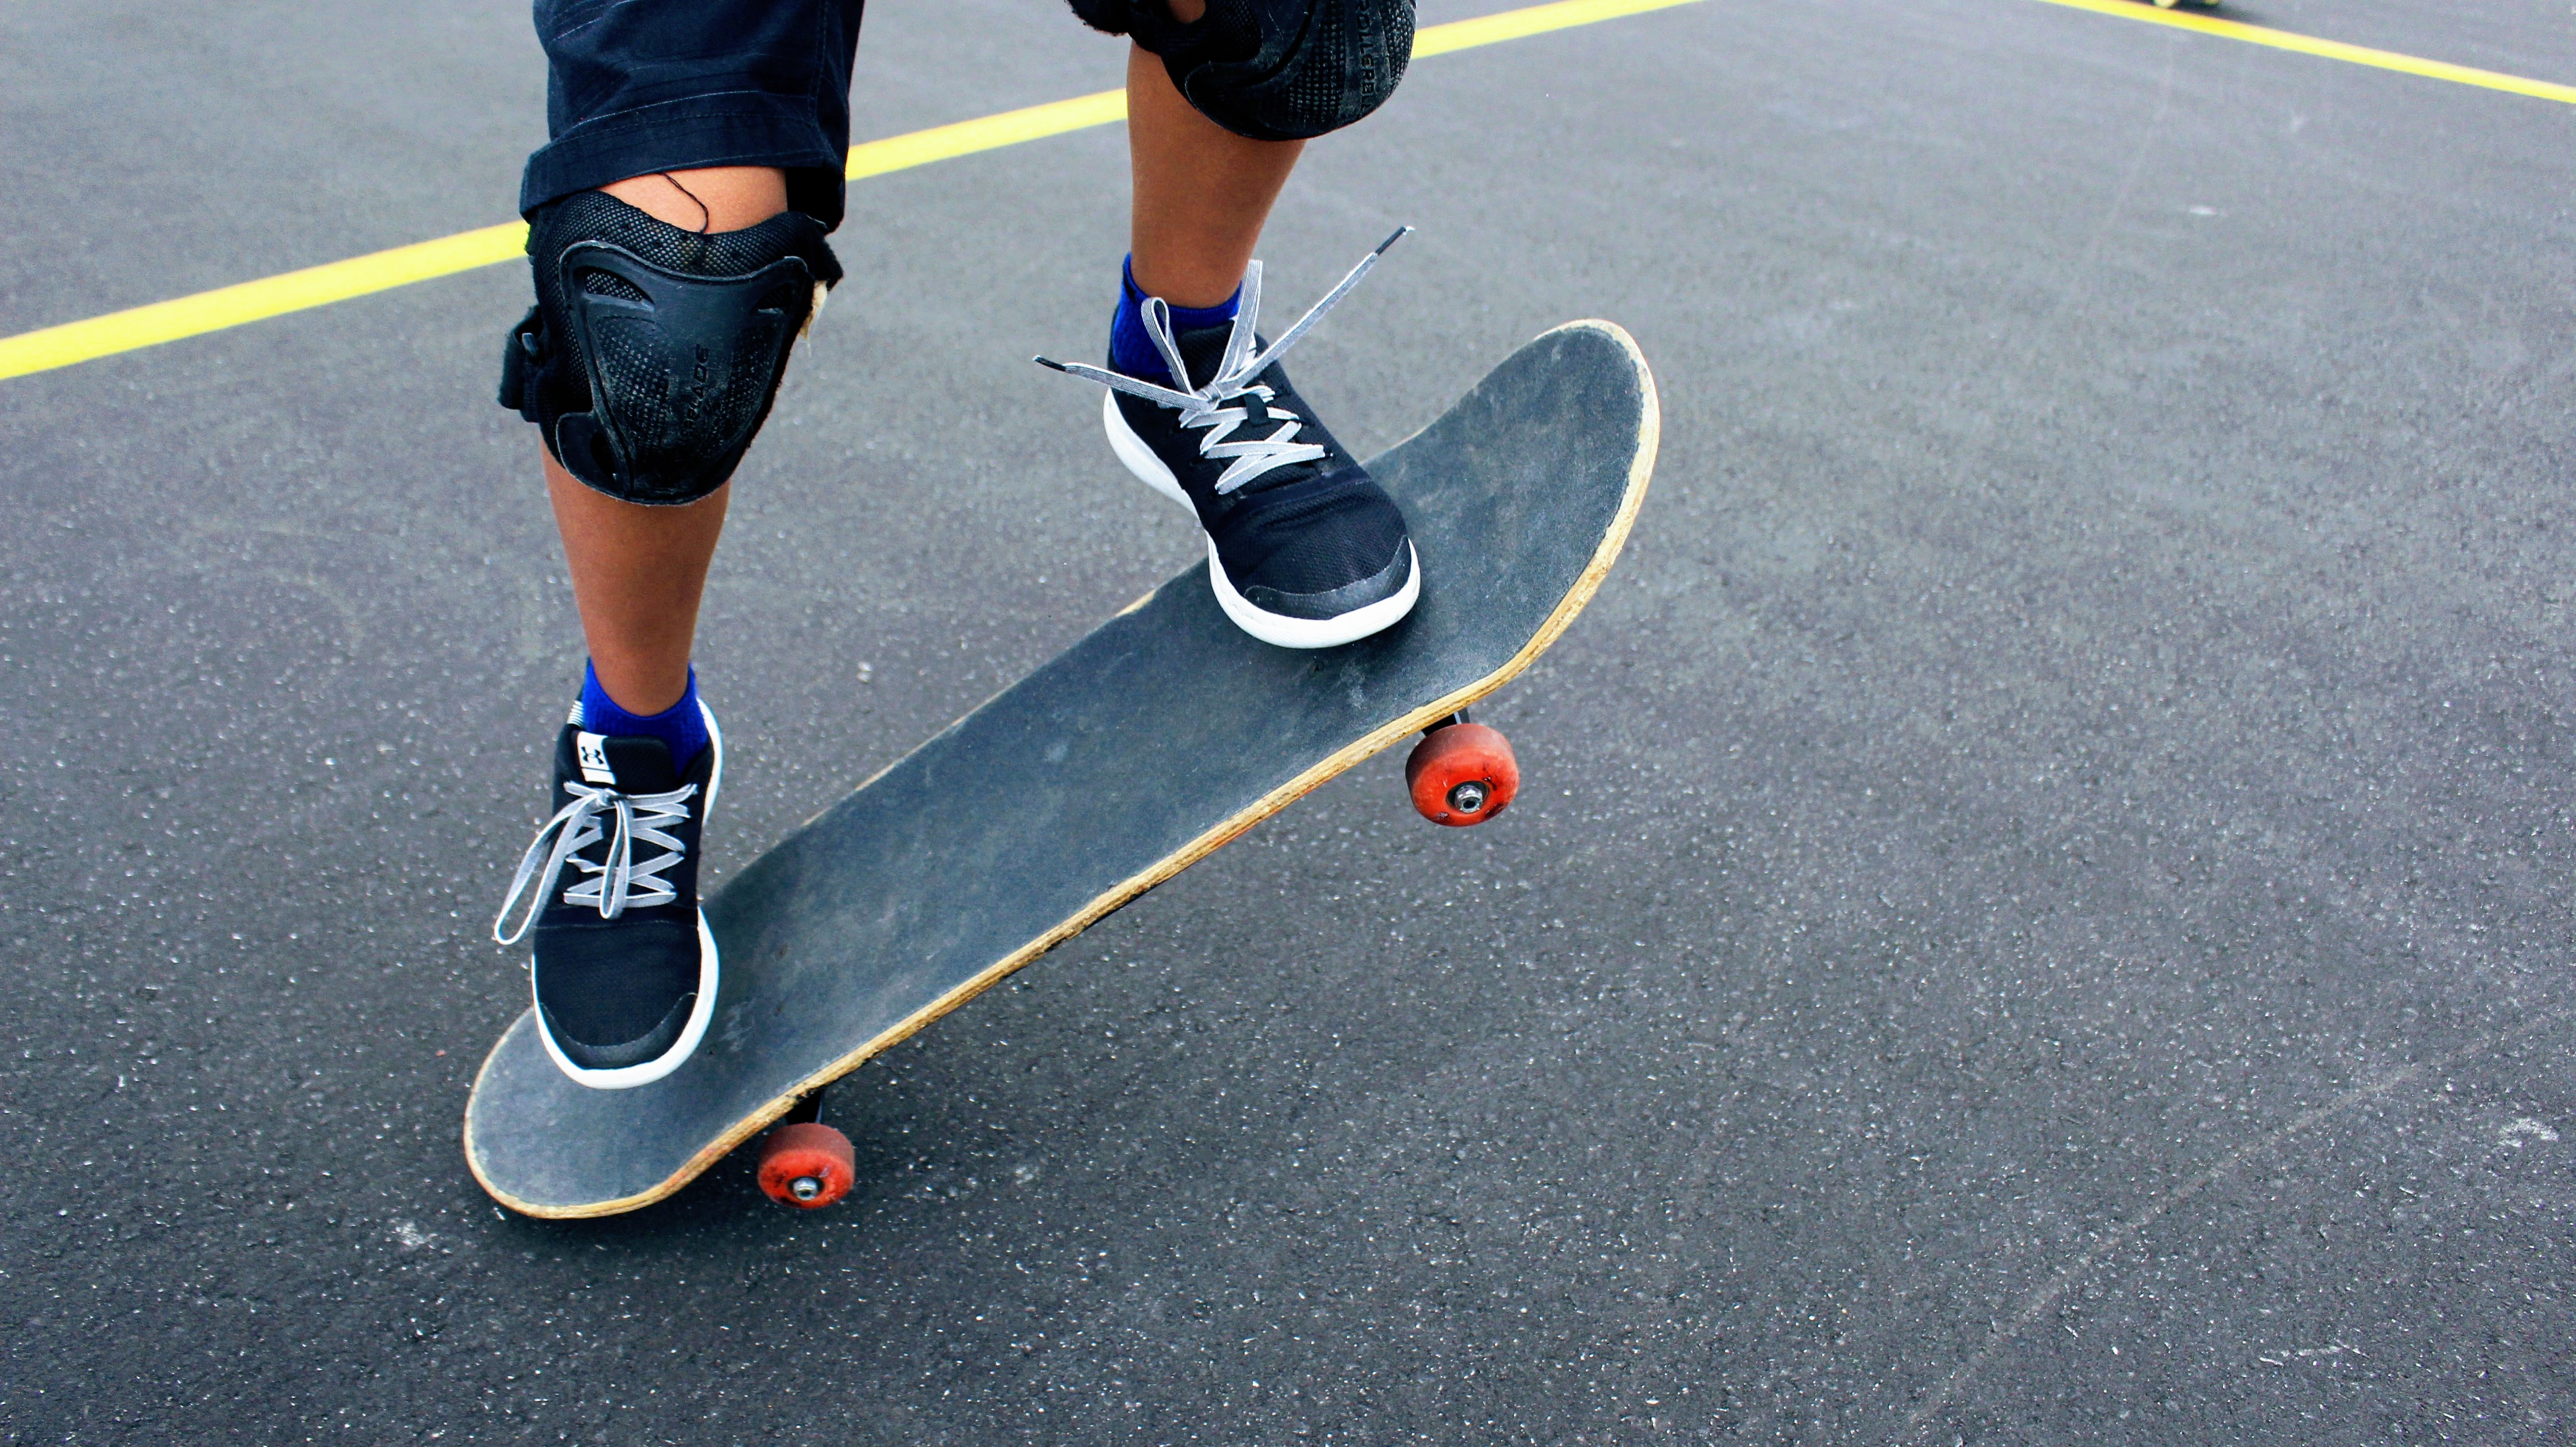 person on skateboard at daytime